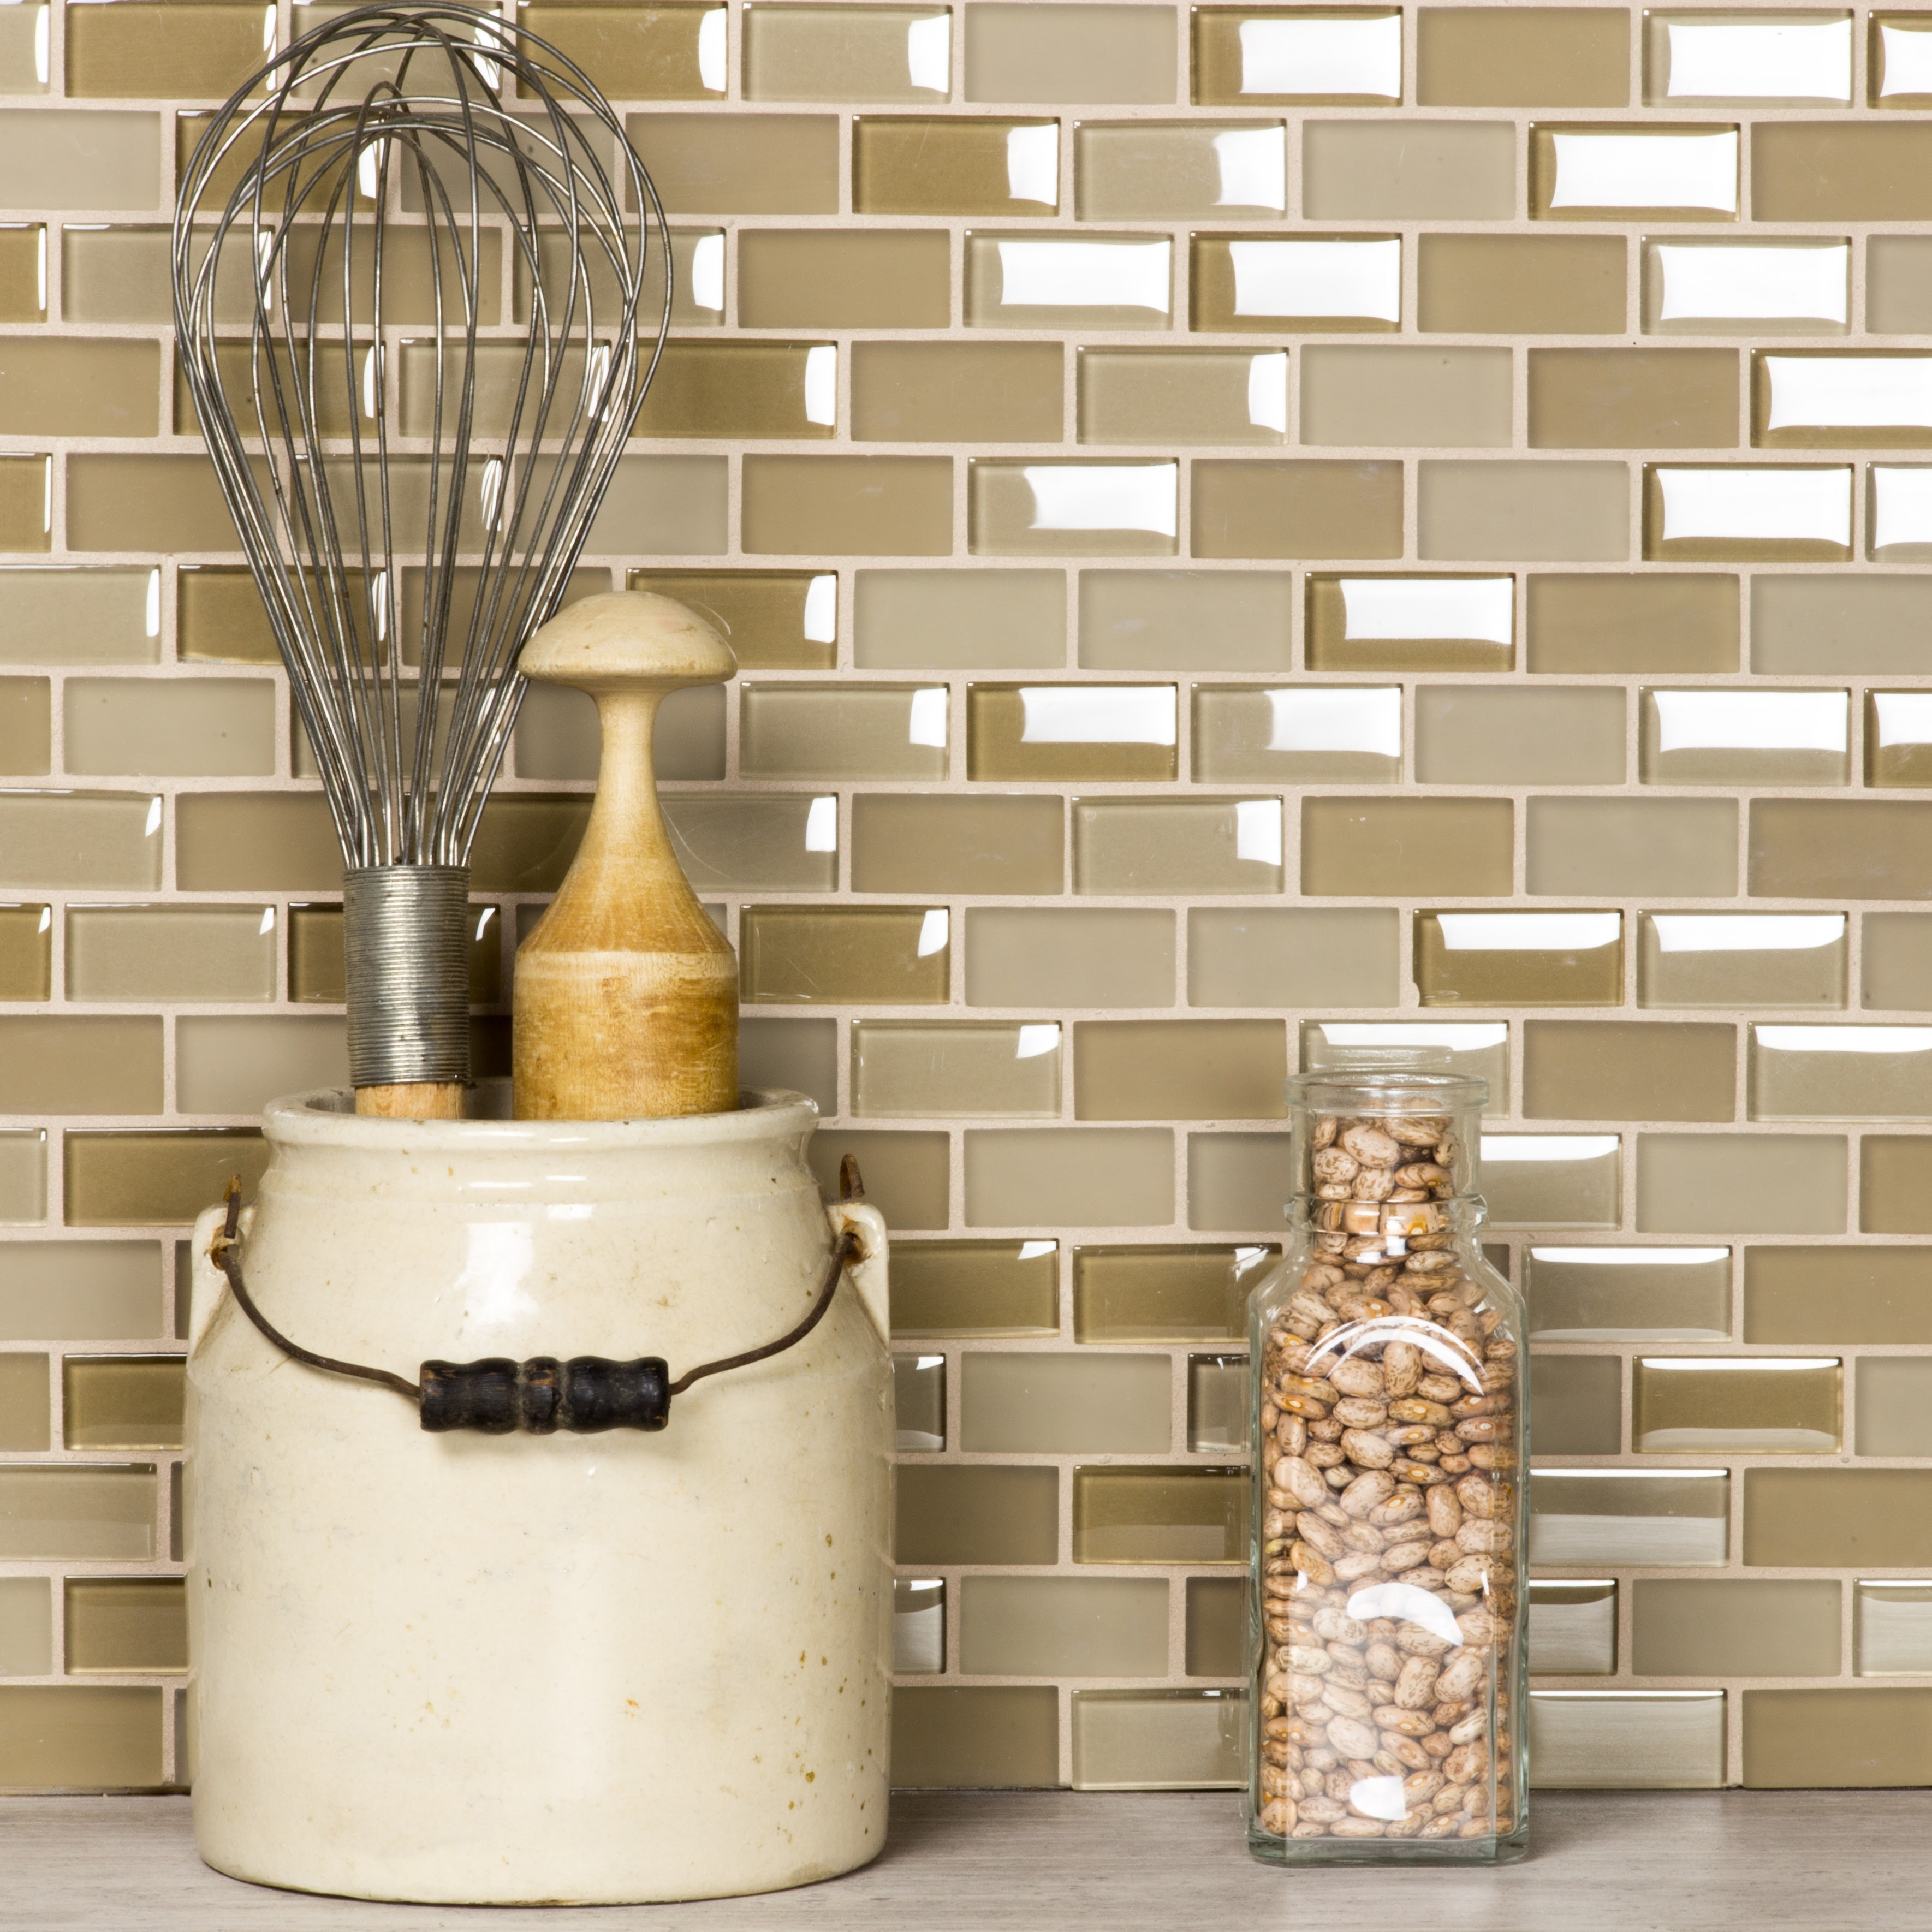 "Free Flow 1"" x 2"" Multi Finish Beige Glass Brick Backsplash Mosaic Wall & Floor Tile"